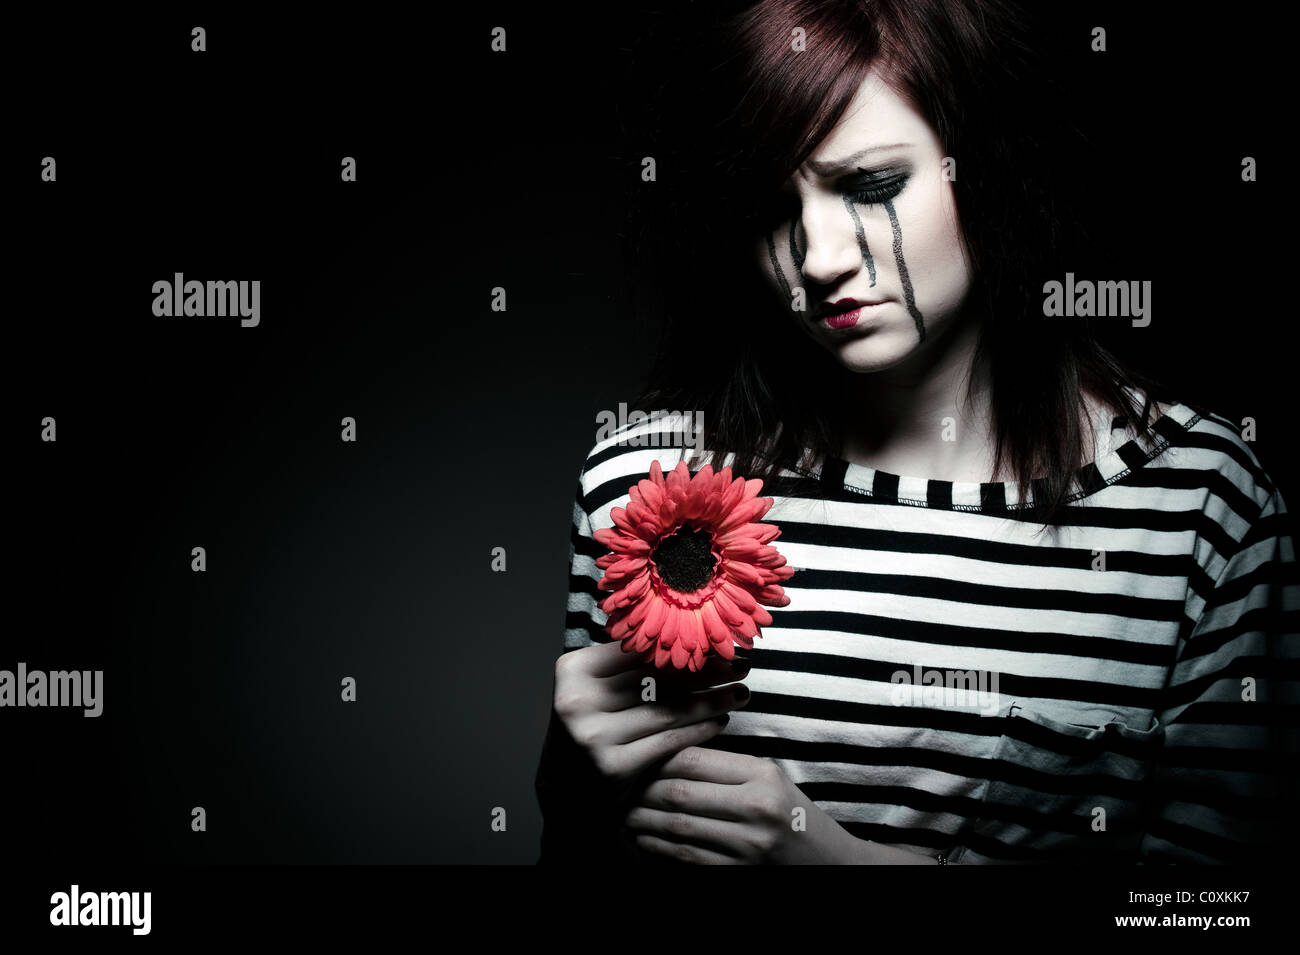 a sad female mime clown with a red flower - Stock Image